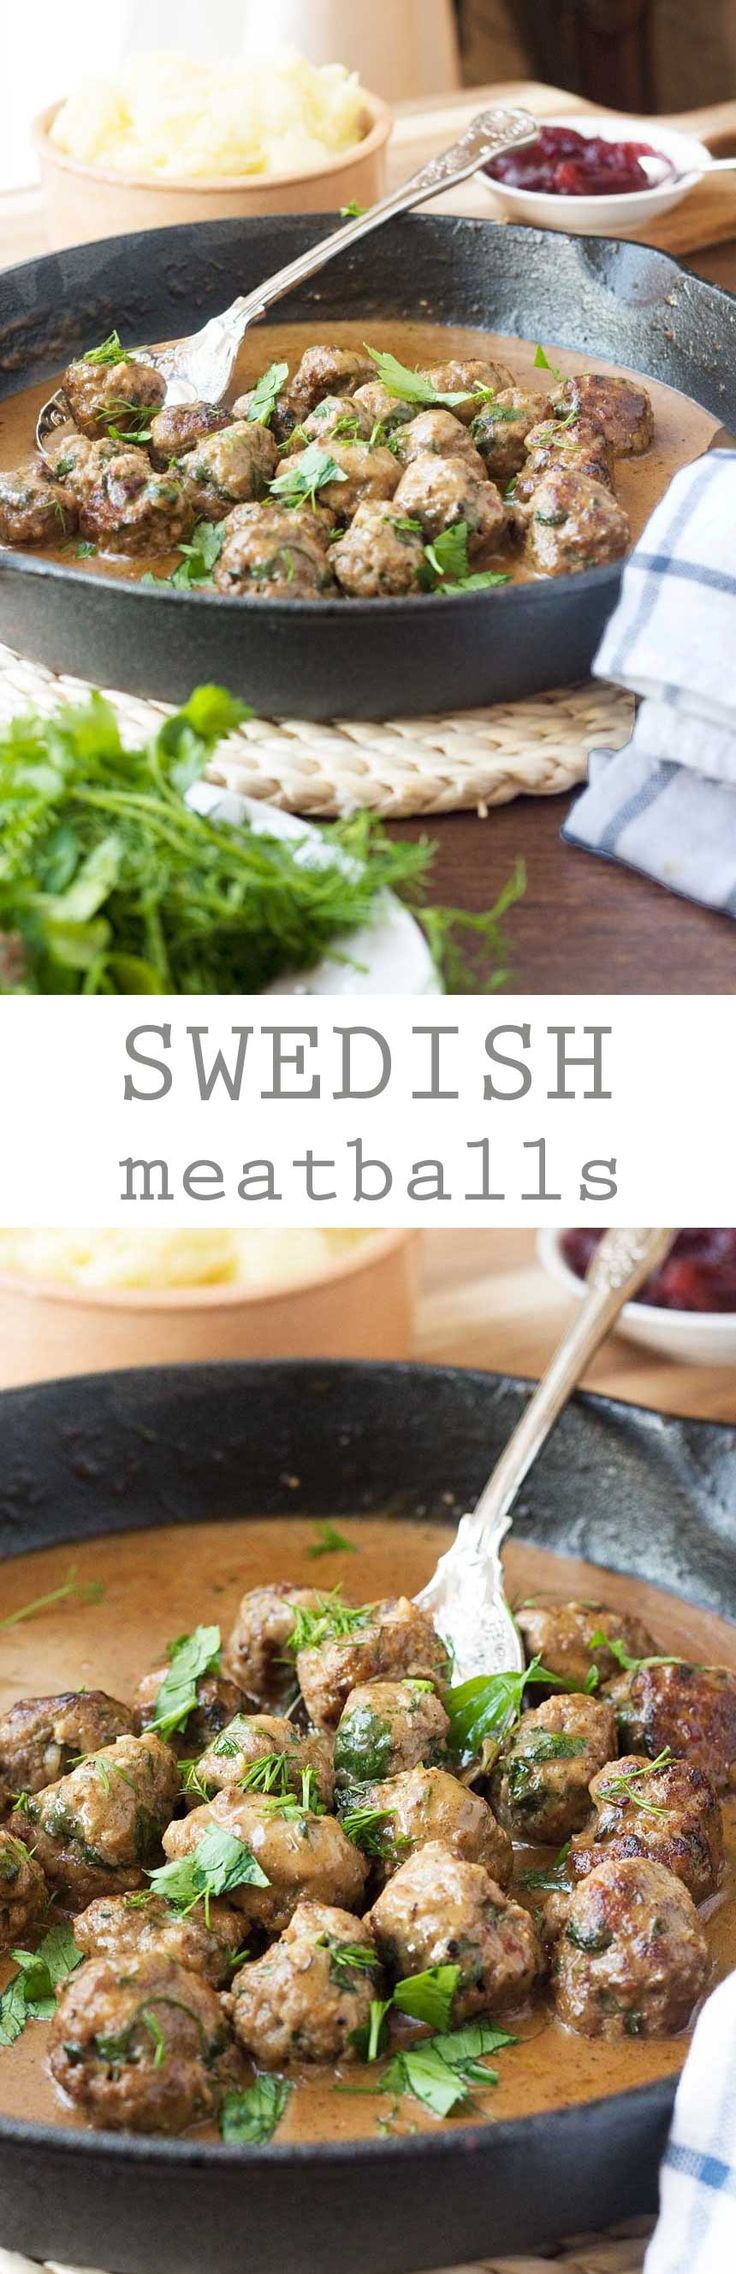 Swedish meatballs - can easily rival the meatballs from 'that' furniture store!